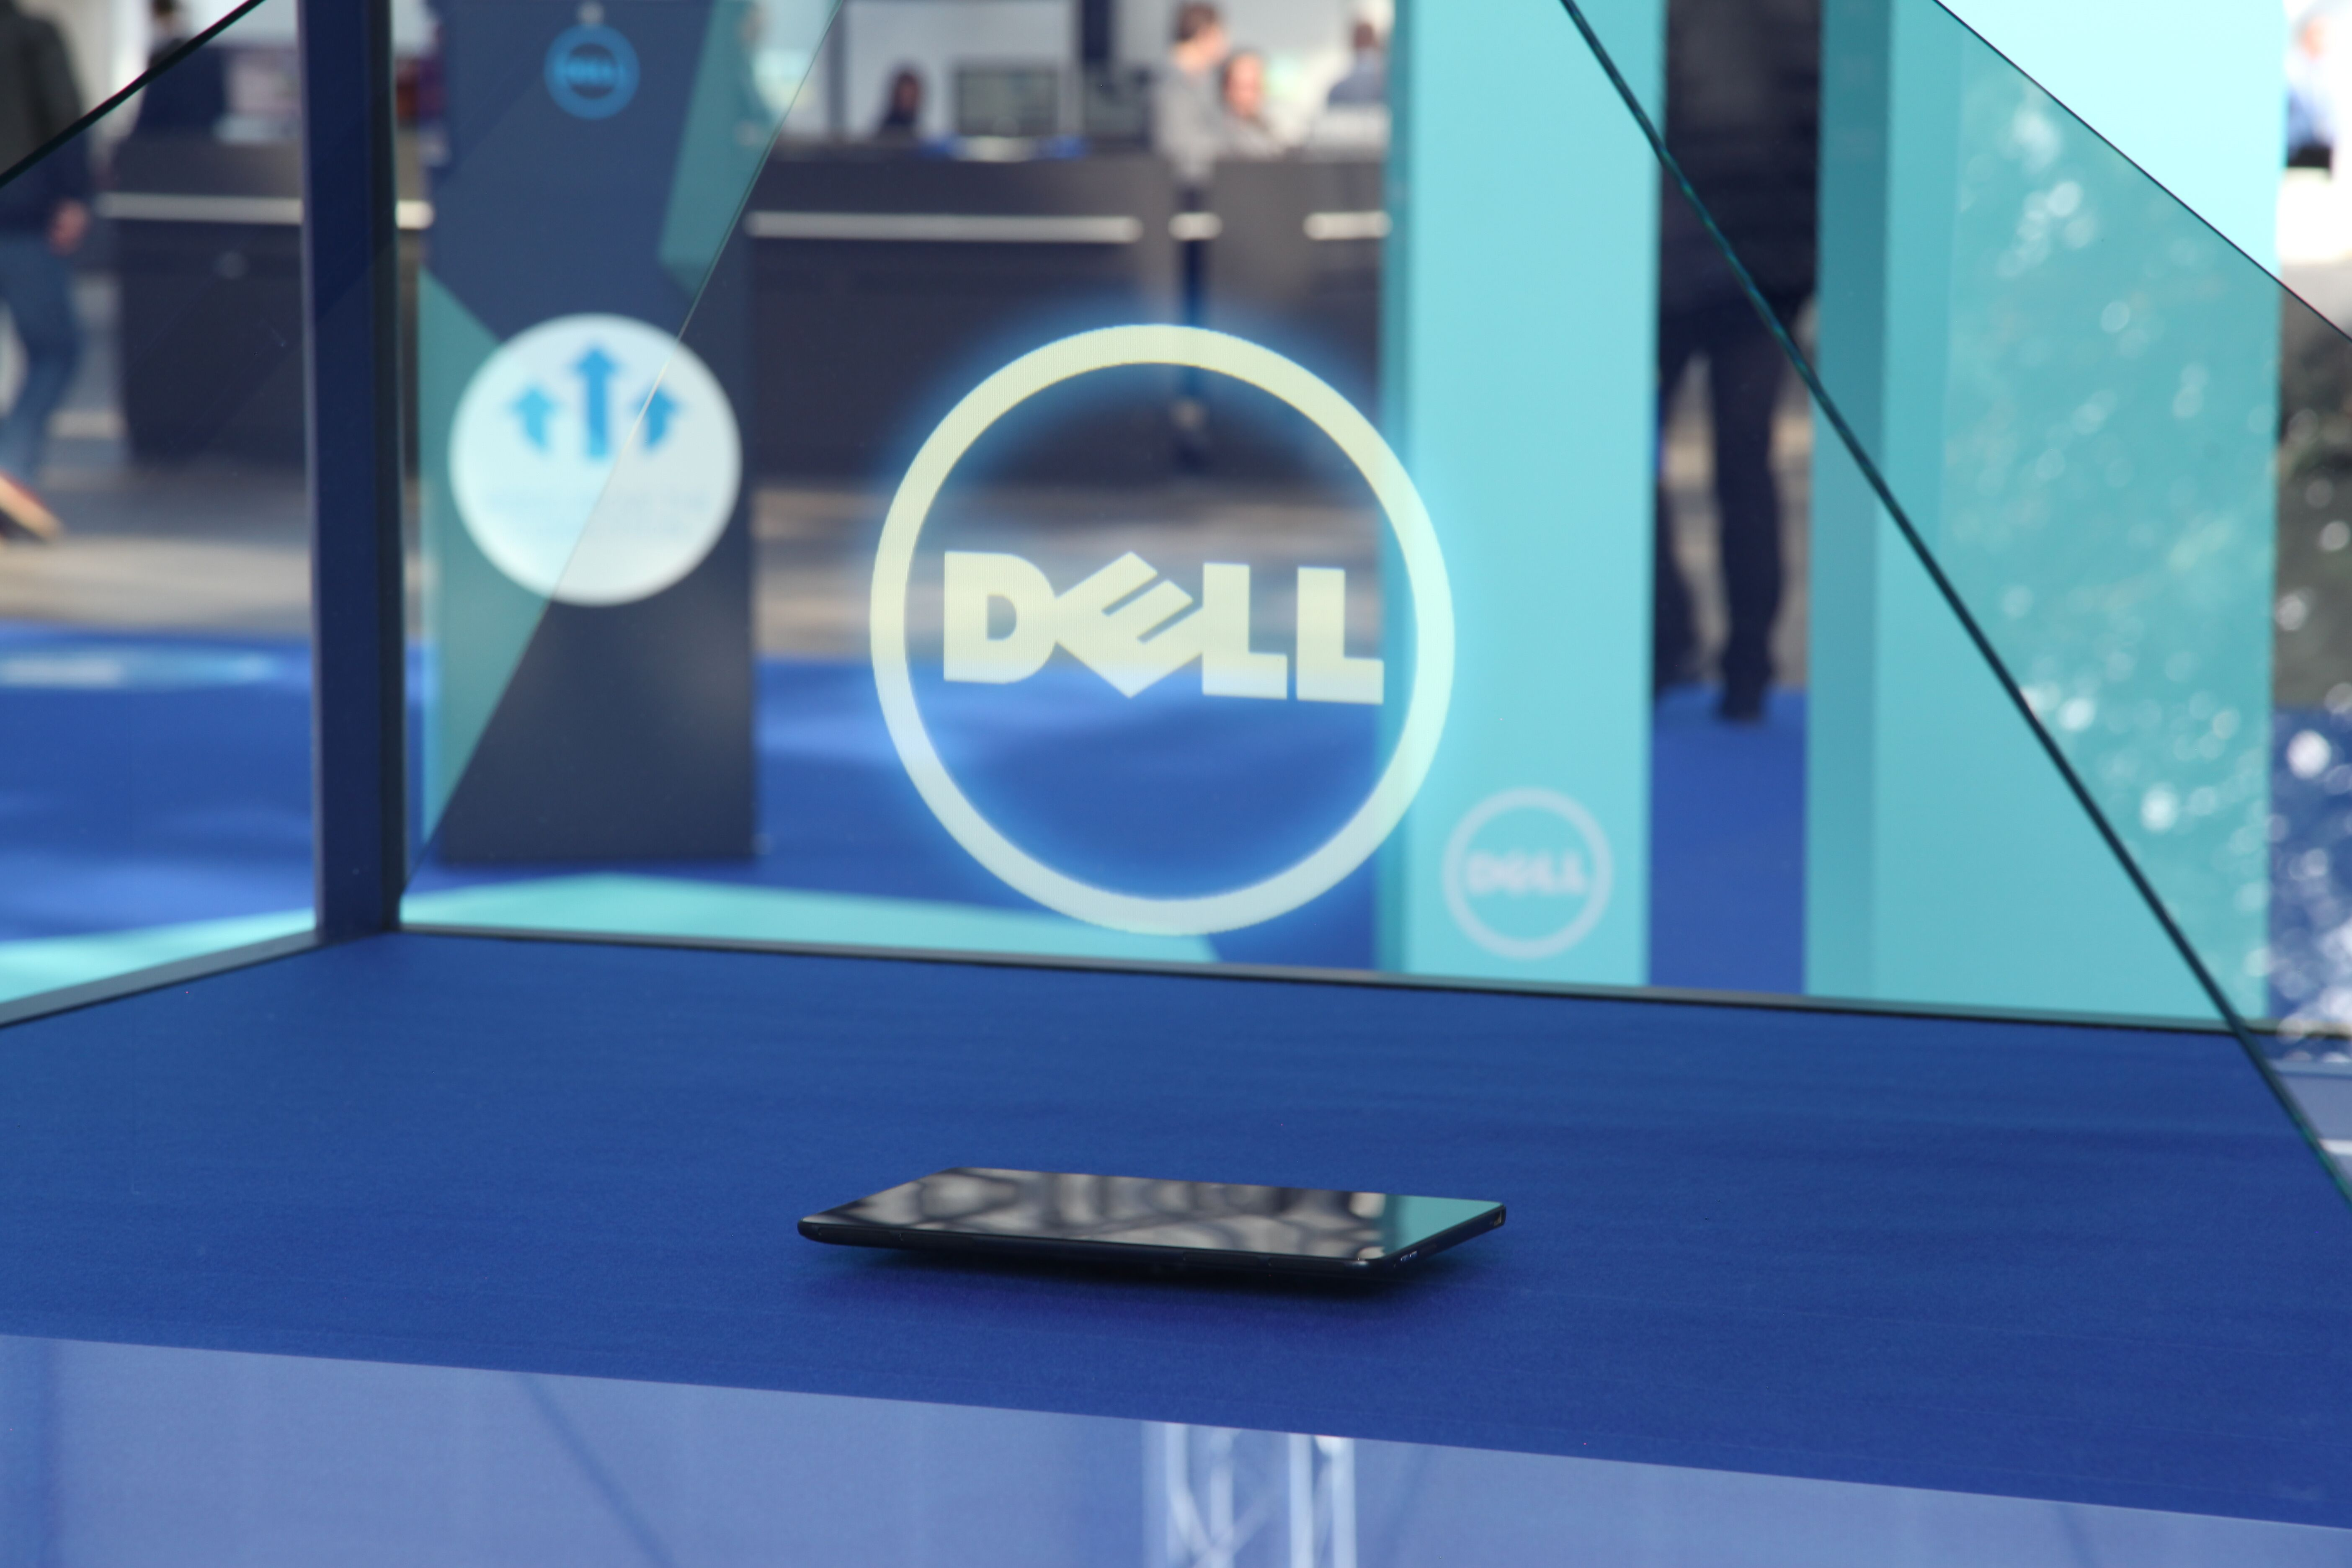 Dell at FRS 2015 Dreamoc 3D holographic display